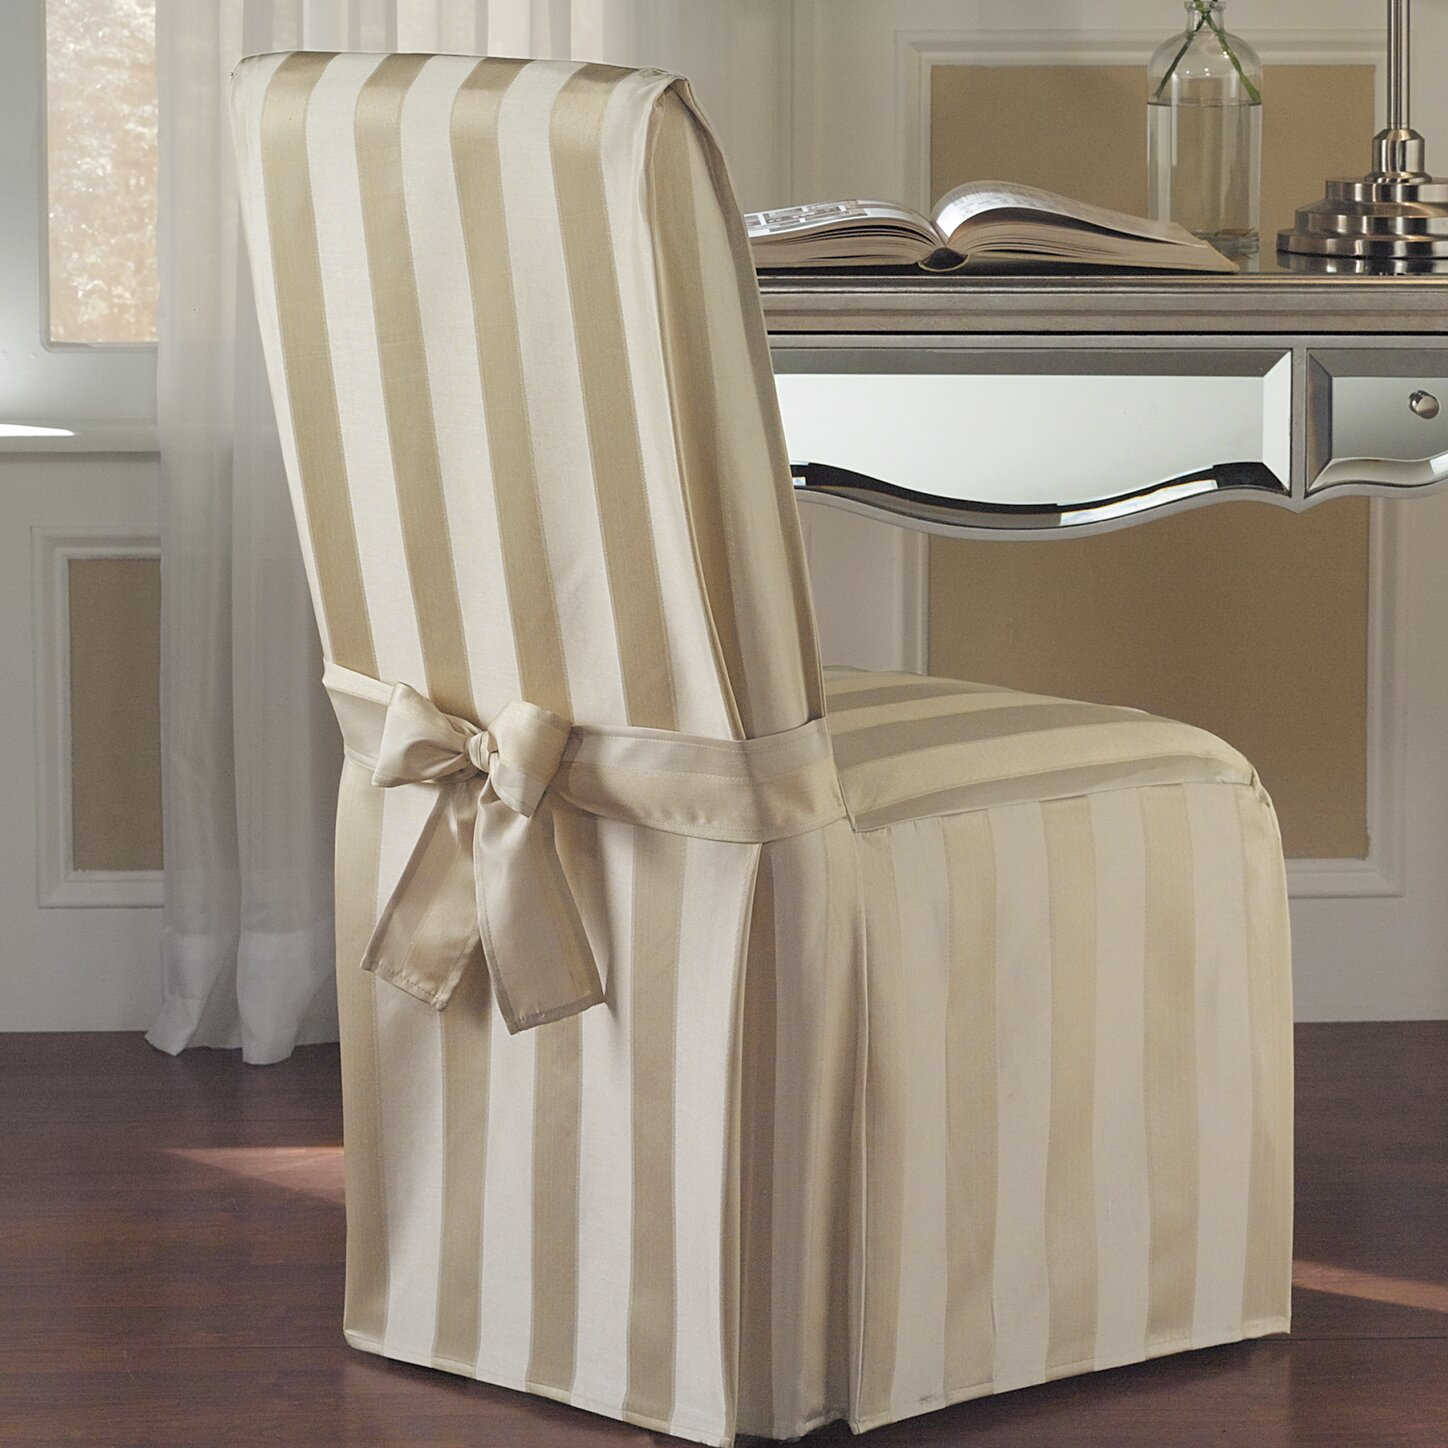 Rosalind Wheeler Parson Chair Slipcover & Reviews